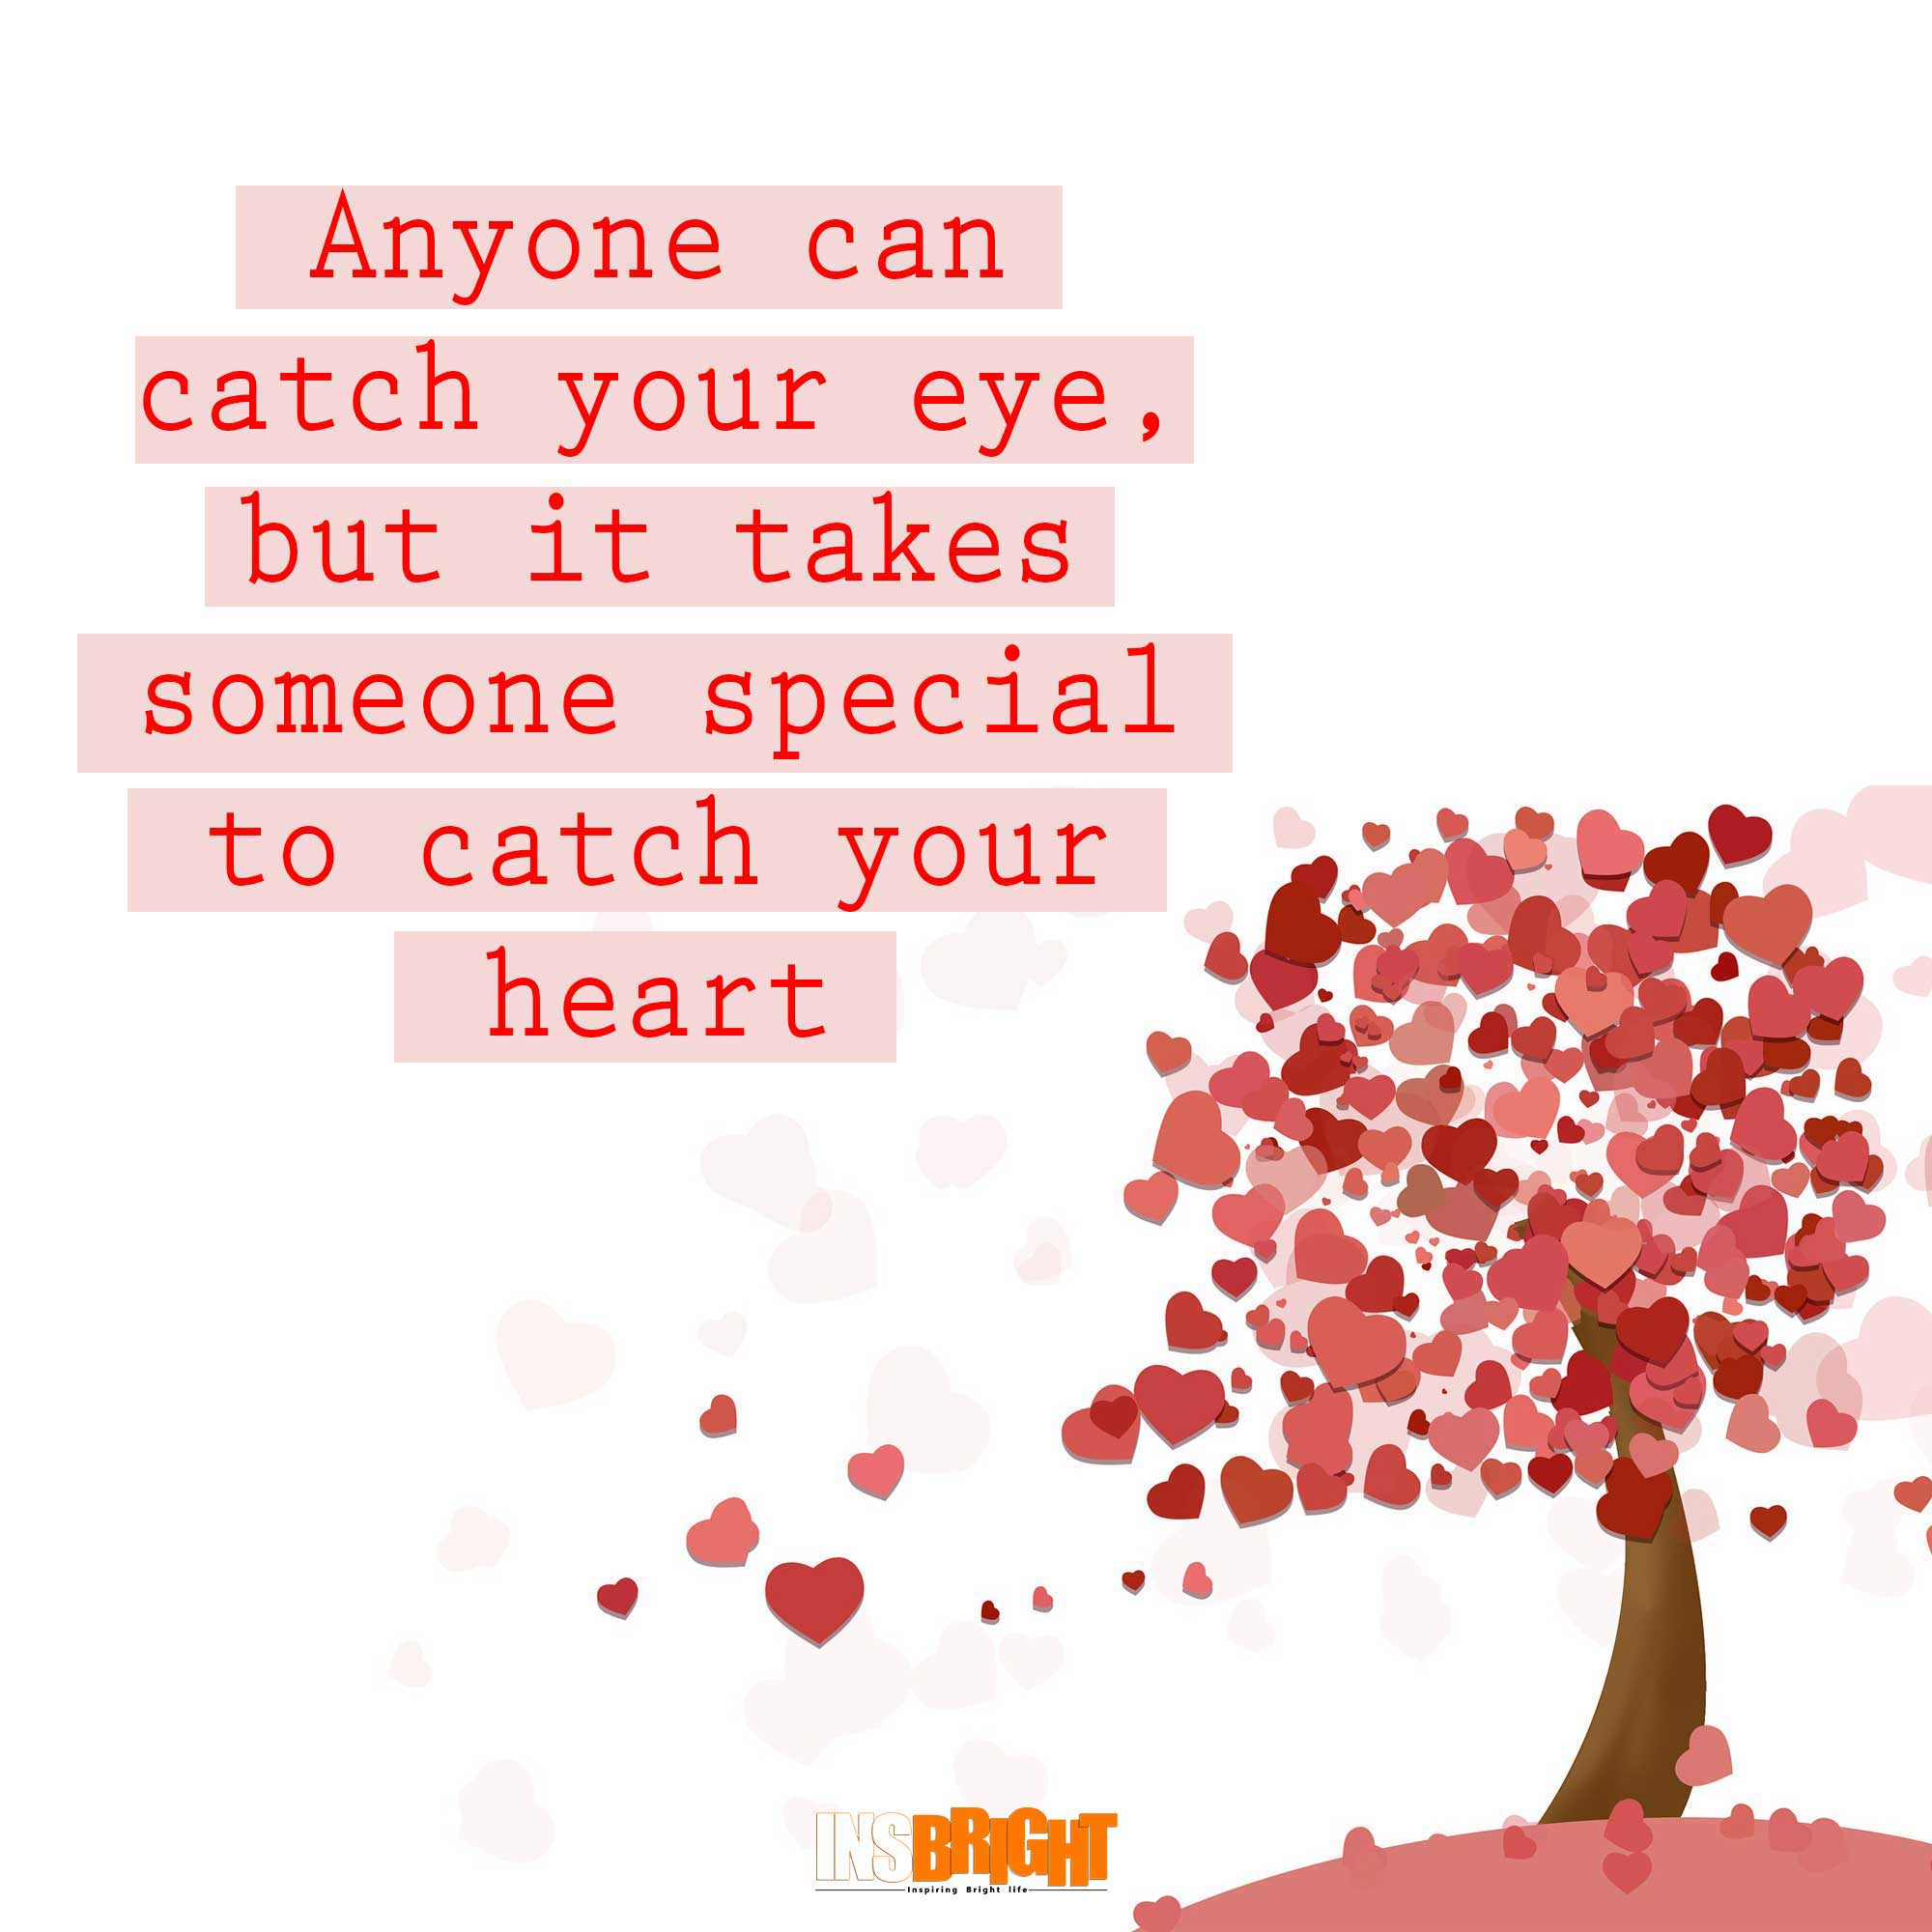 Boyfriend Quotes For Valentines Day: Cute Happy Valentines Day Quotes With Images For Him Or